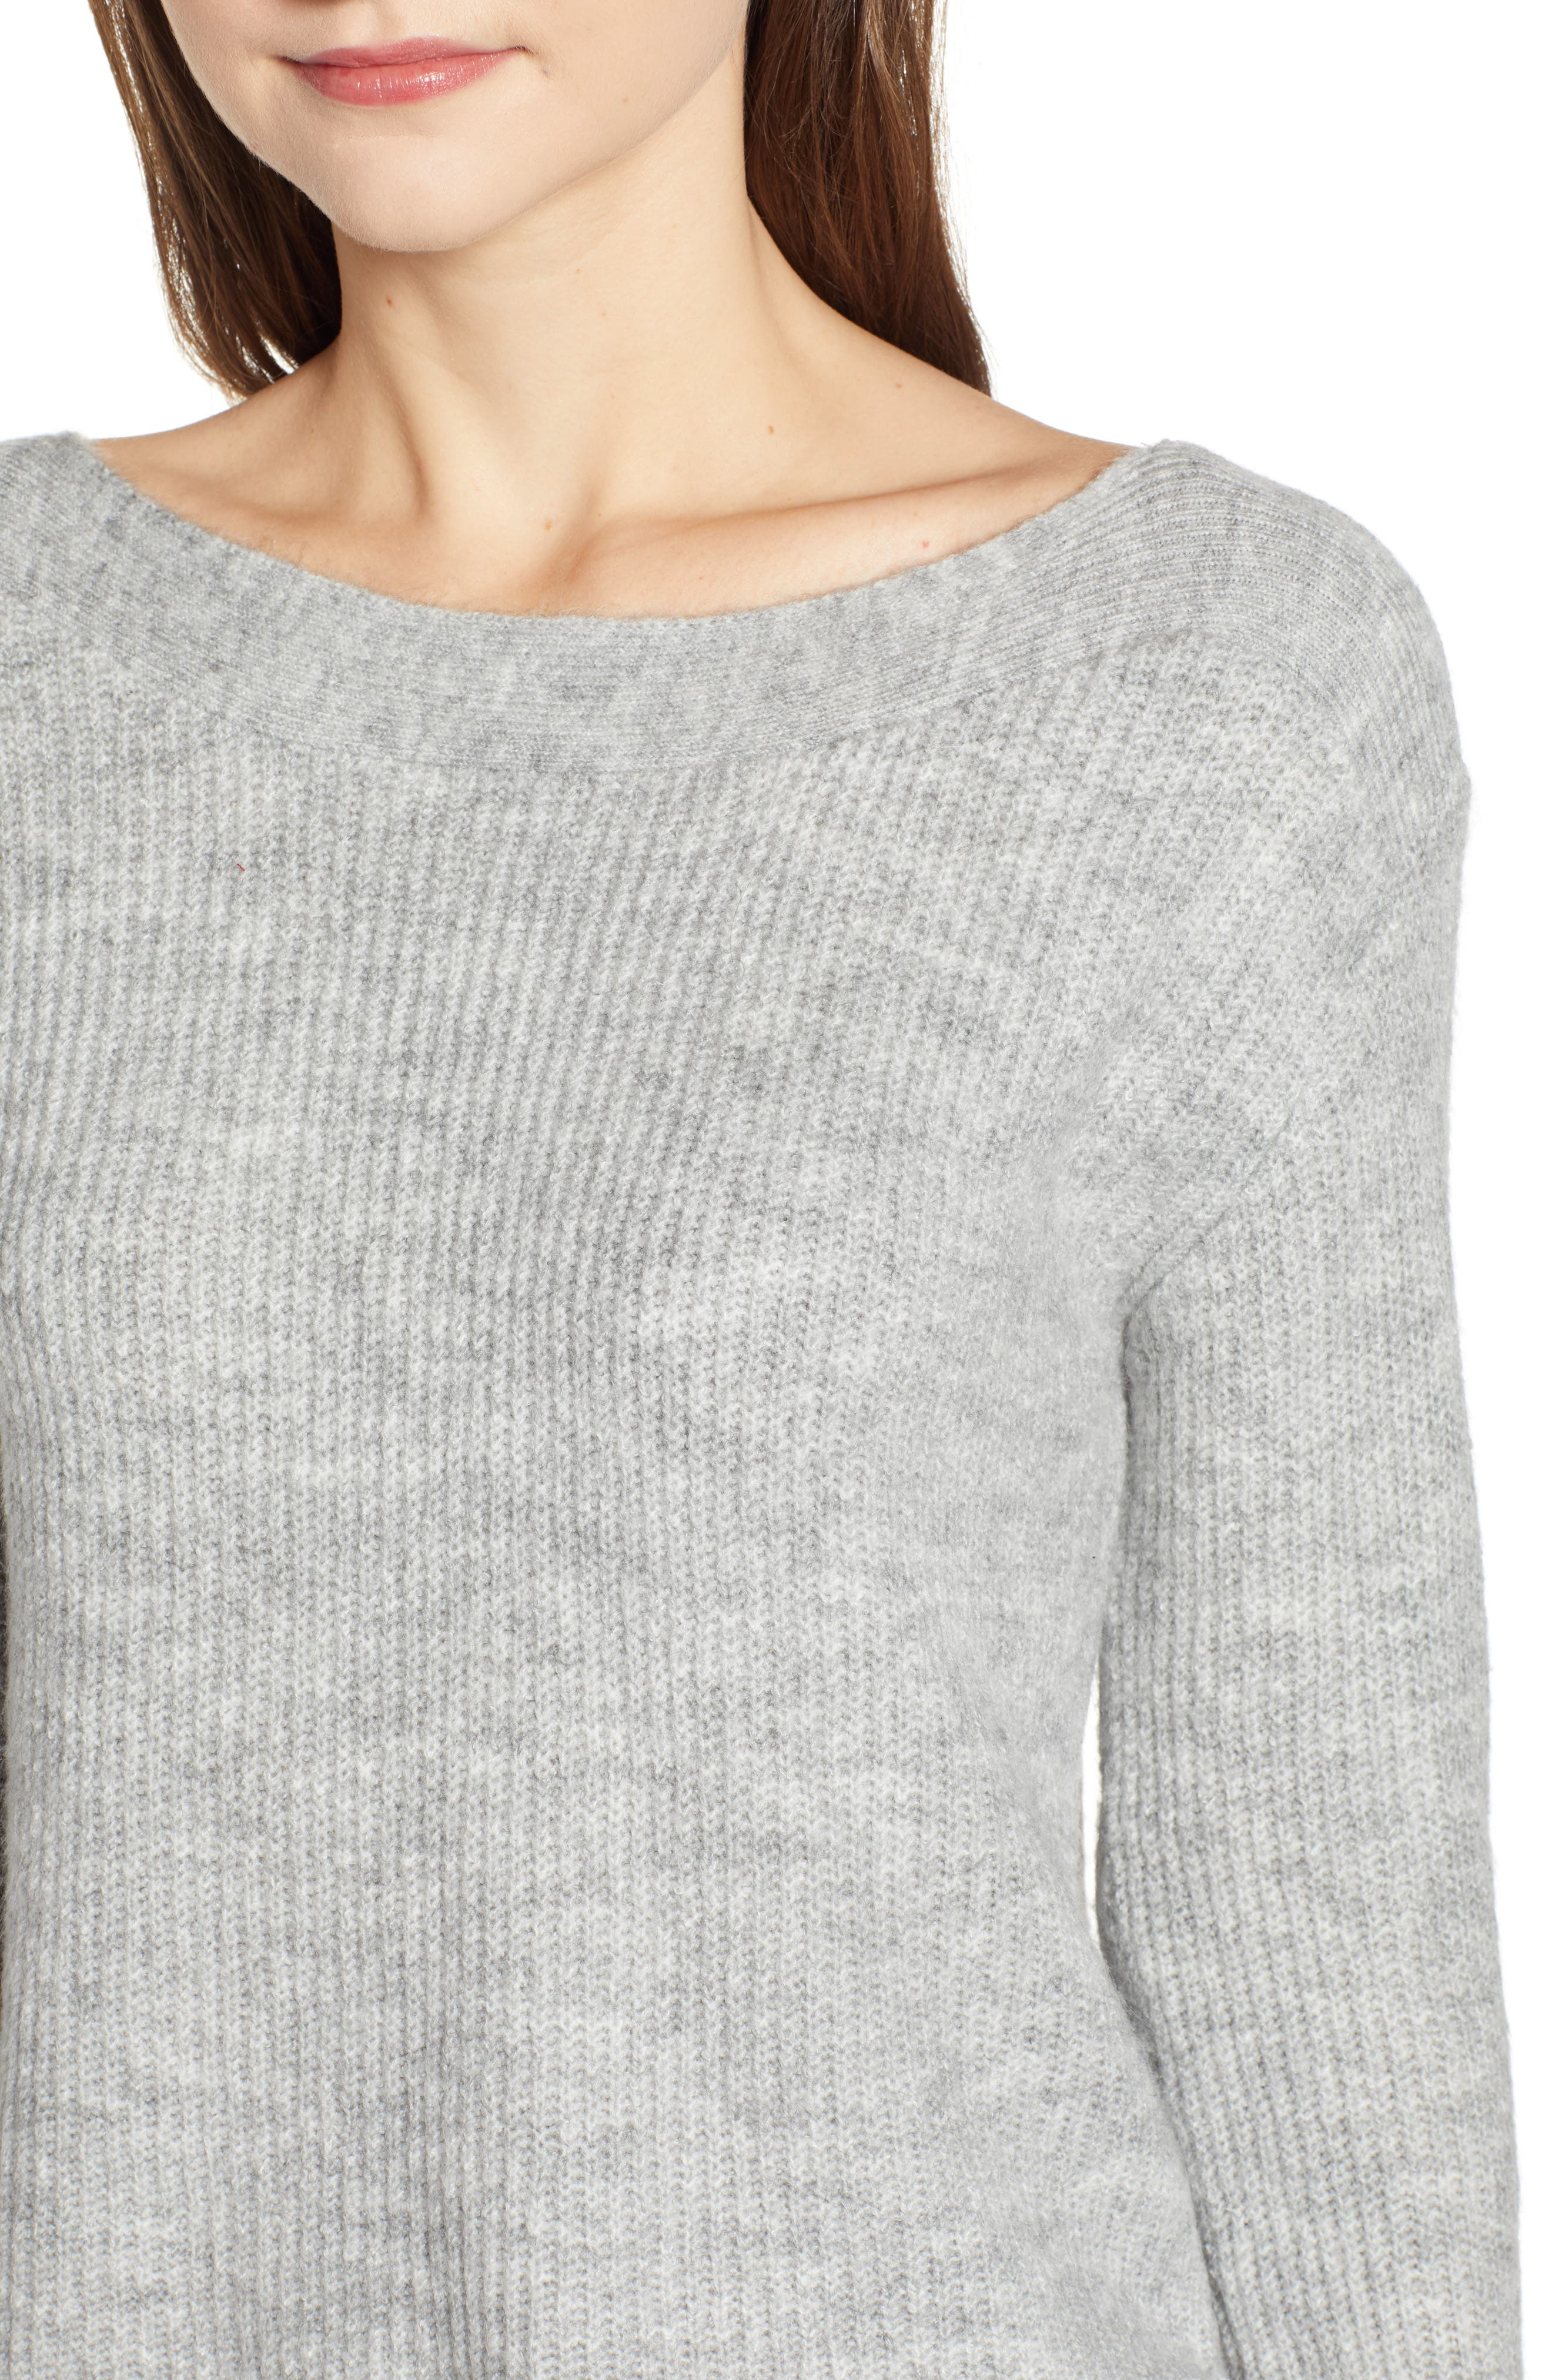 Cozy Femme Pullover Sweater,                             Alternate thumbnail 4, color,                             GREY PEARL HEATHER